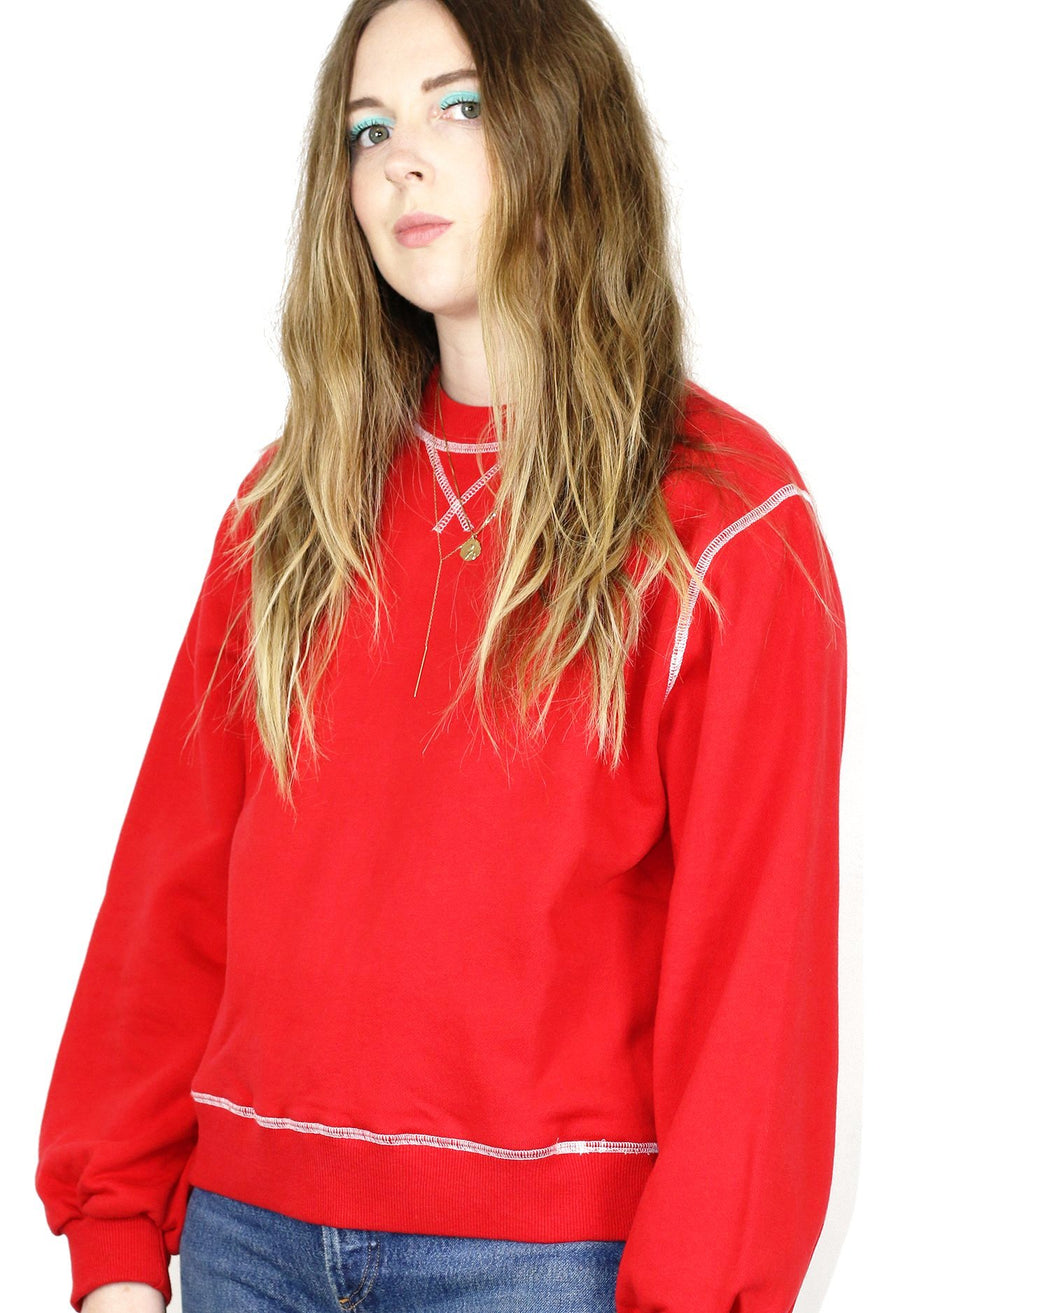 L.F.Markey:Theirry Sweatshirt – Red,ANOMIE